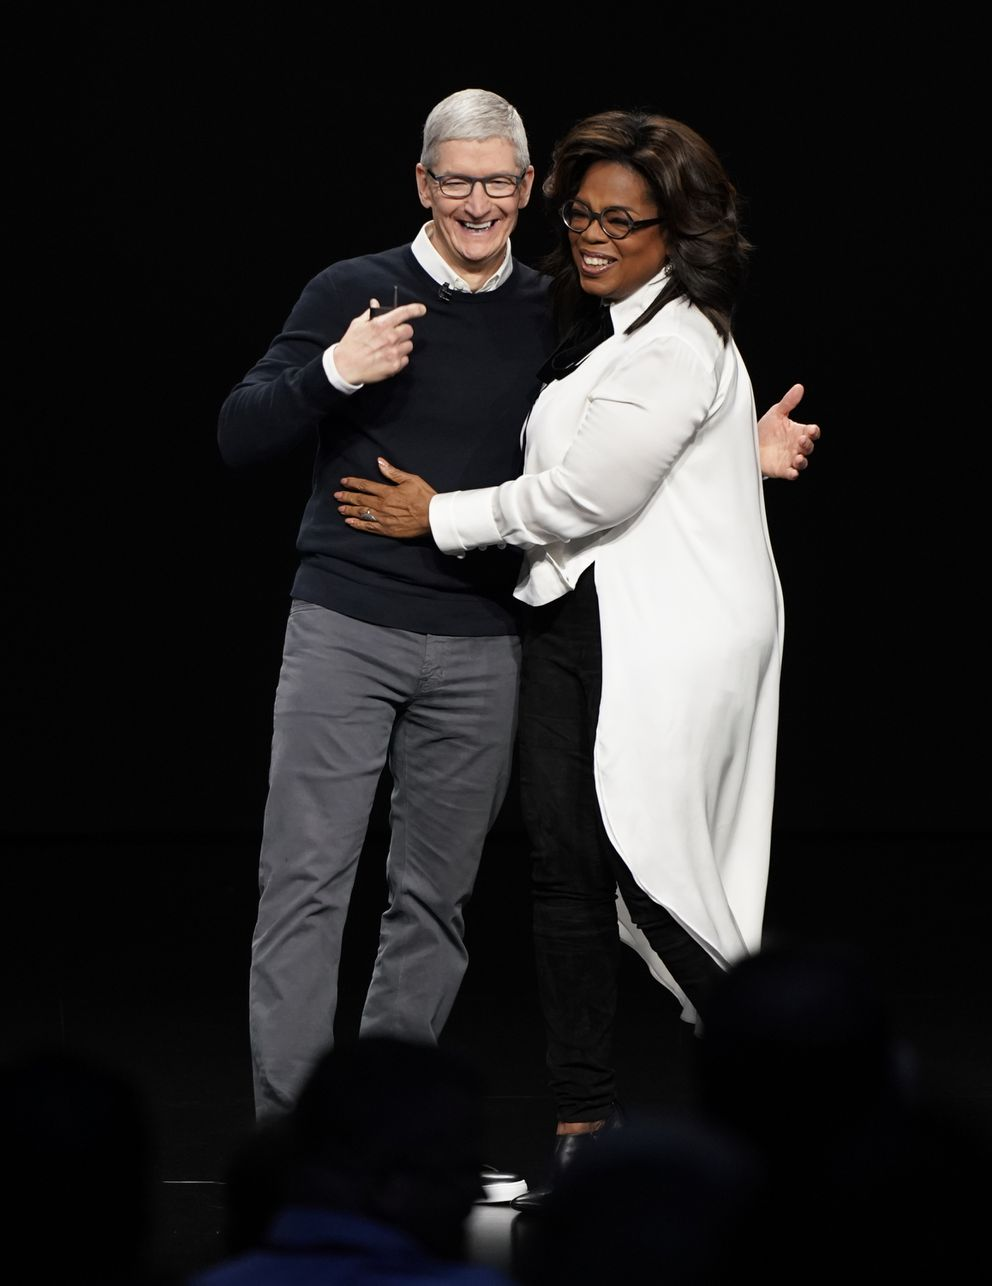 Apple CEO Tim Cook and Oprah Winfrey at the Steve Jobs Theater during an event to announce new products Monday, March 25, 2019, in Cupertino, Calif. (AP Photo/Tony Avelar)